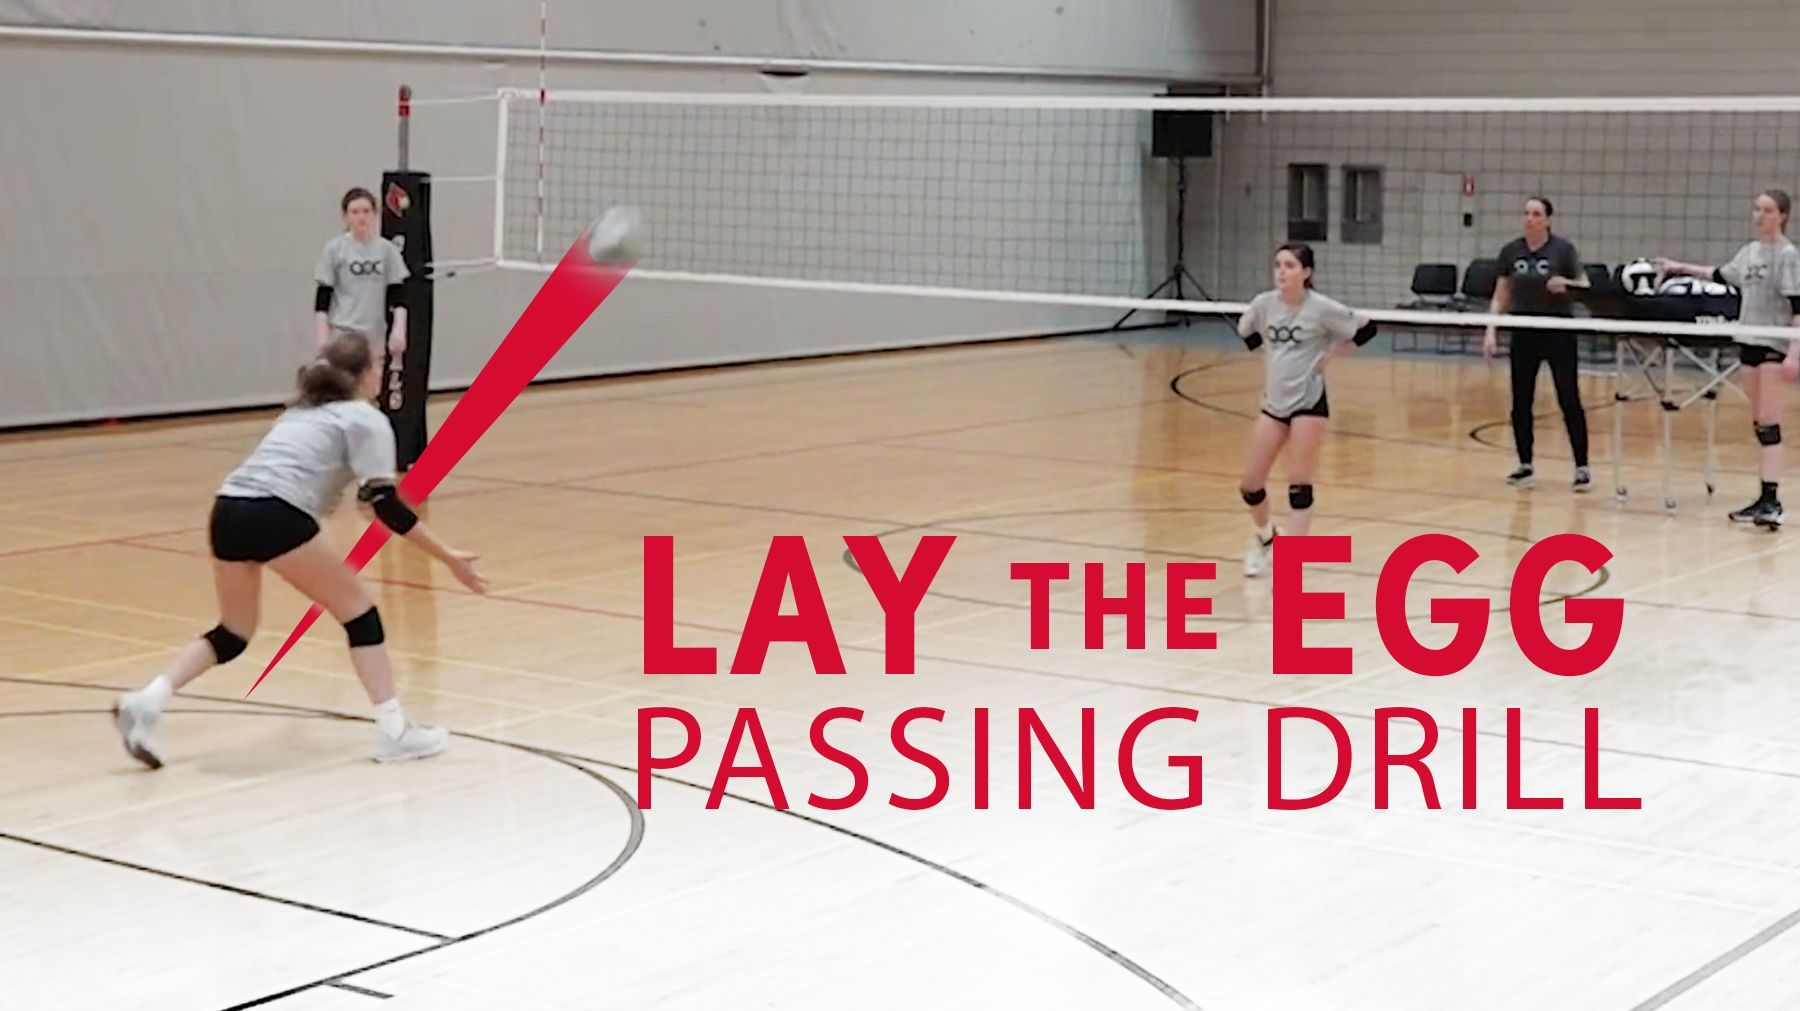 Lay The Egg Passing Drill The Art Of Coaching Volleyball Volleyball Workouts Volleyball Practice Coaching Volleyball